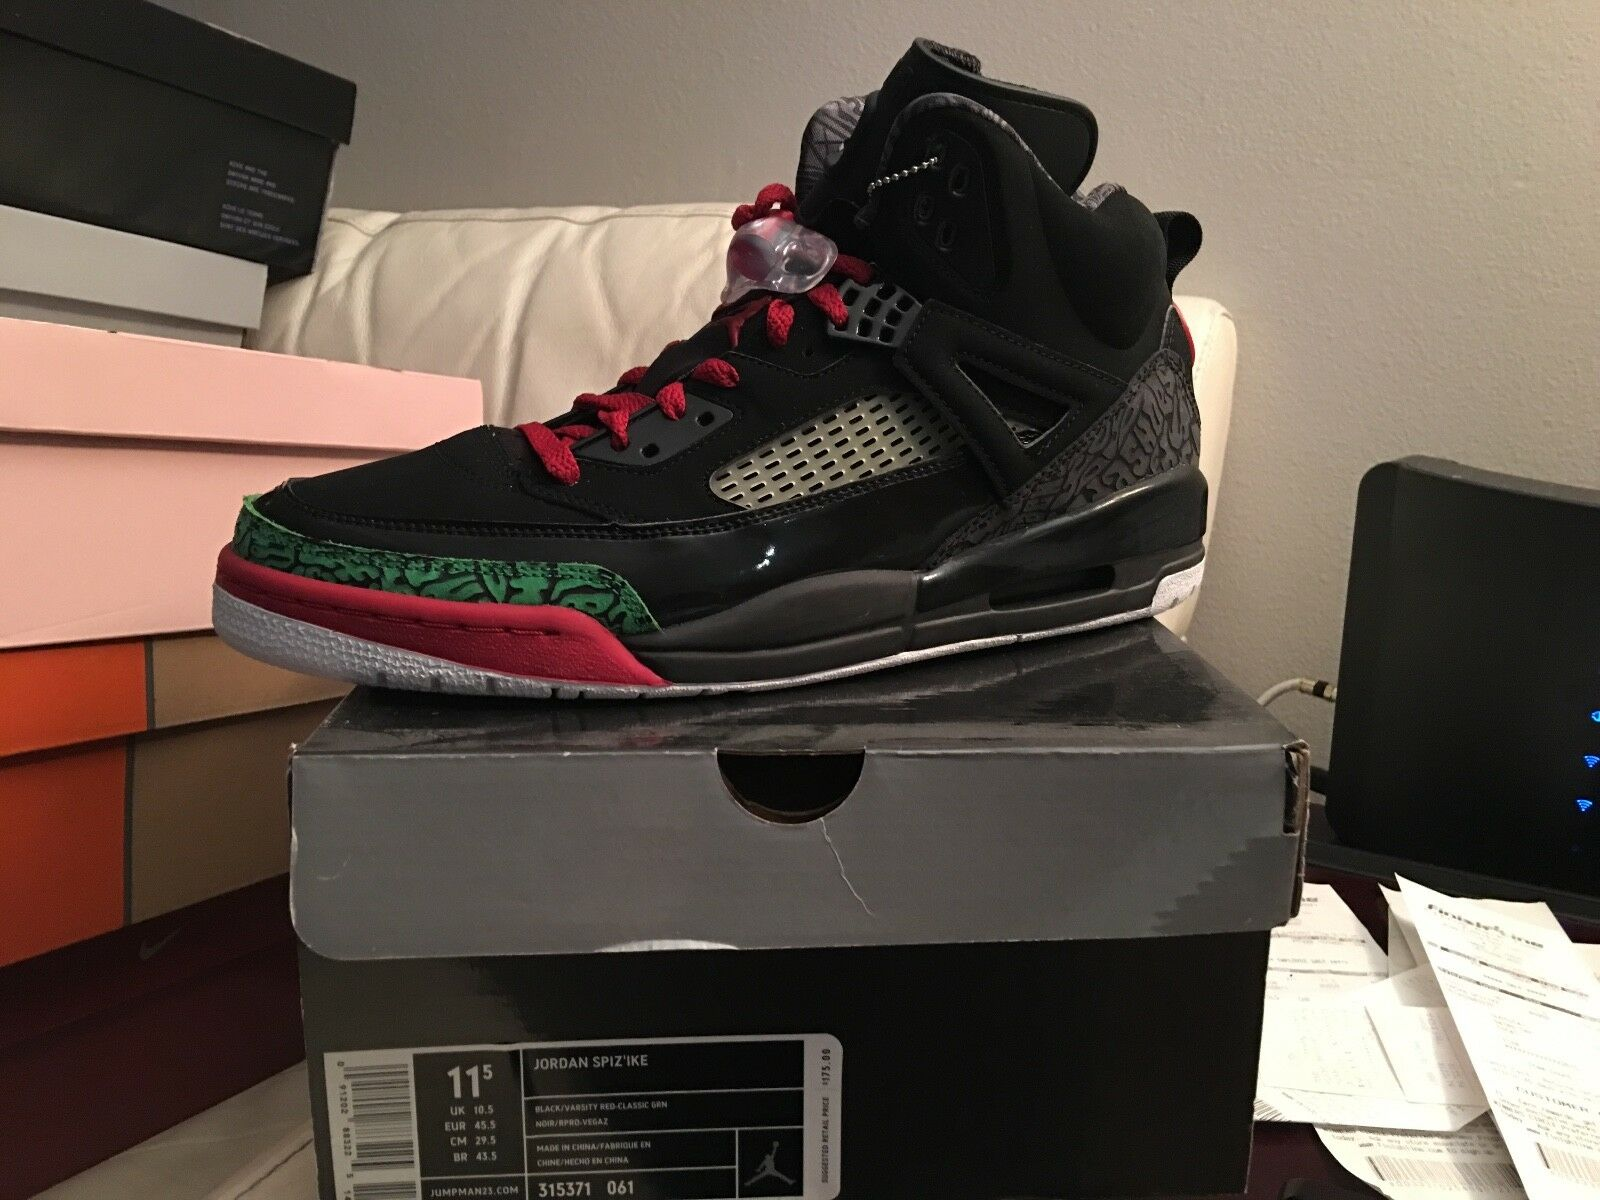 air jordan spizike black red dead and green size 11.5 dead red stock fab11a